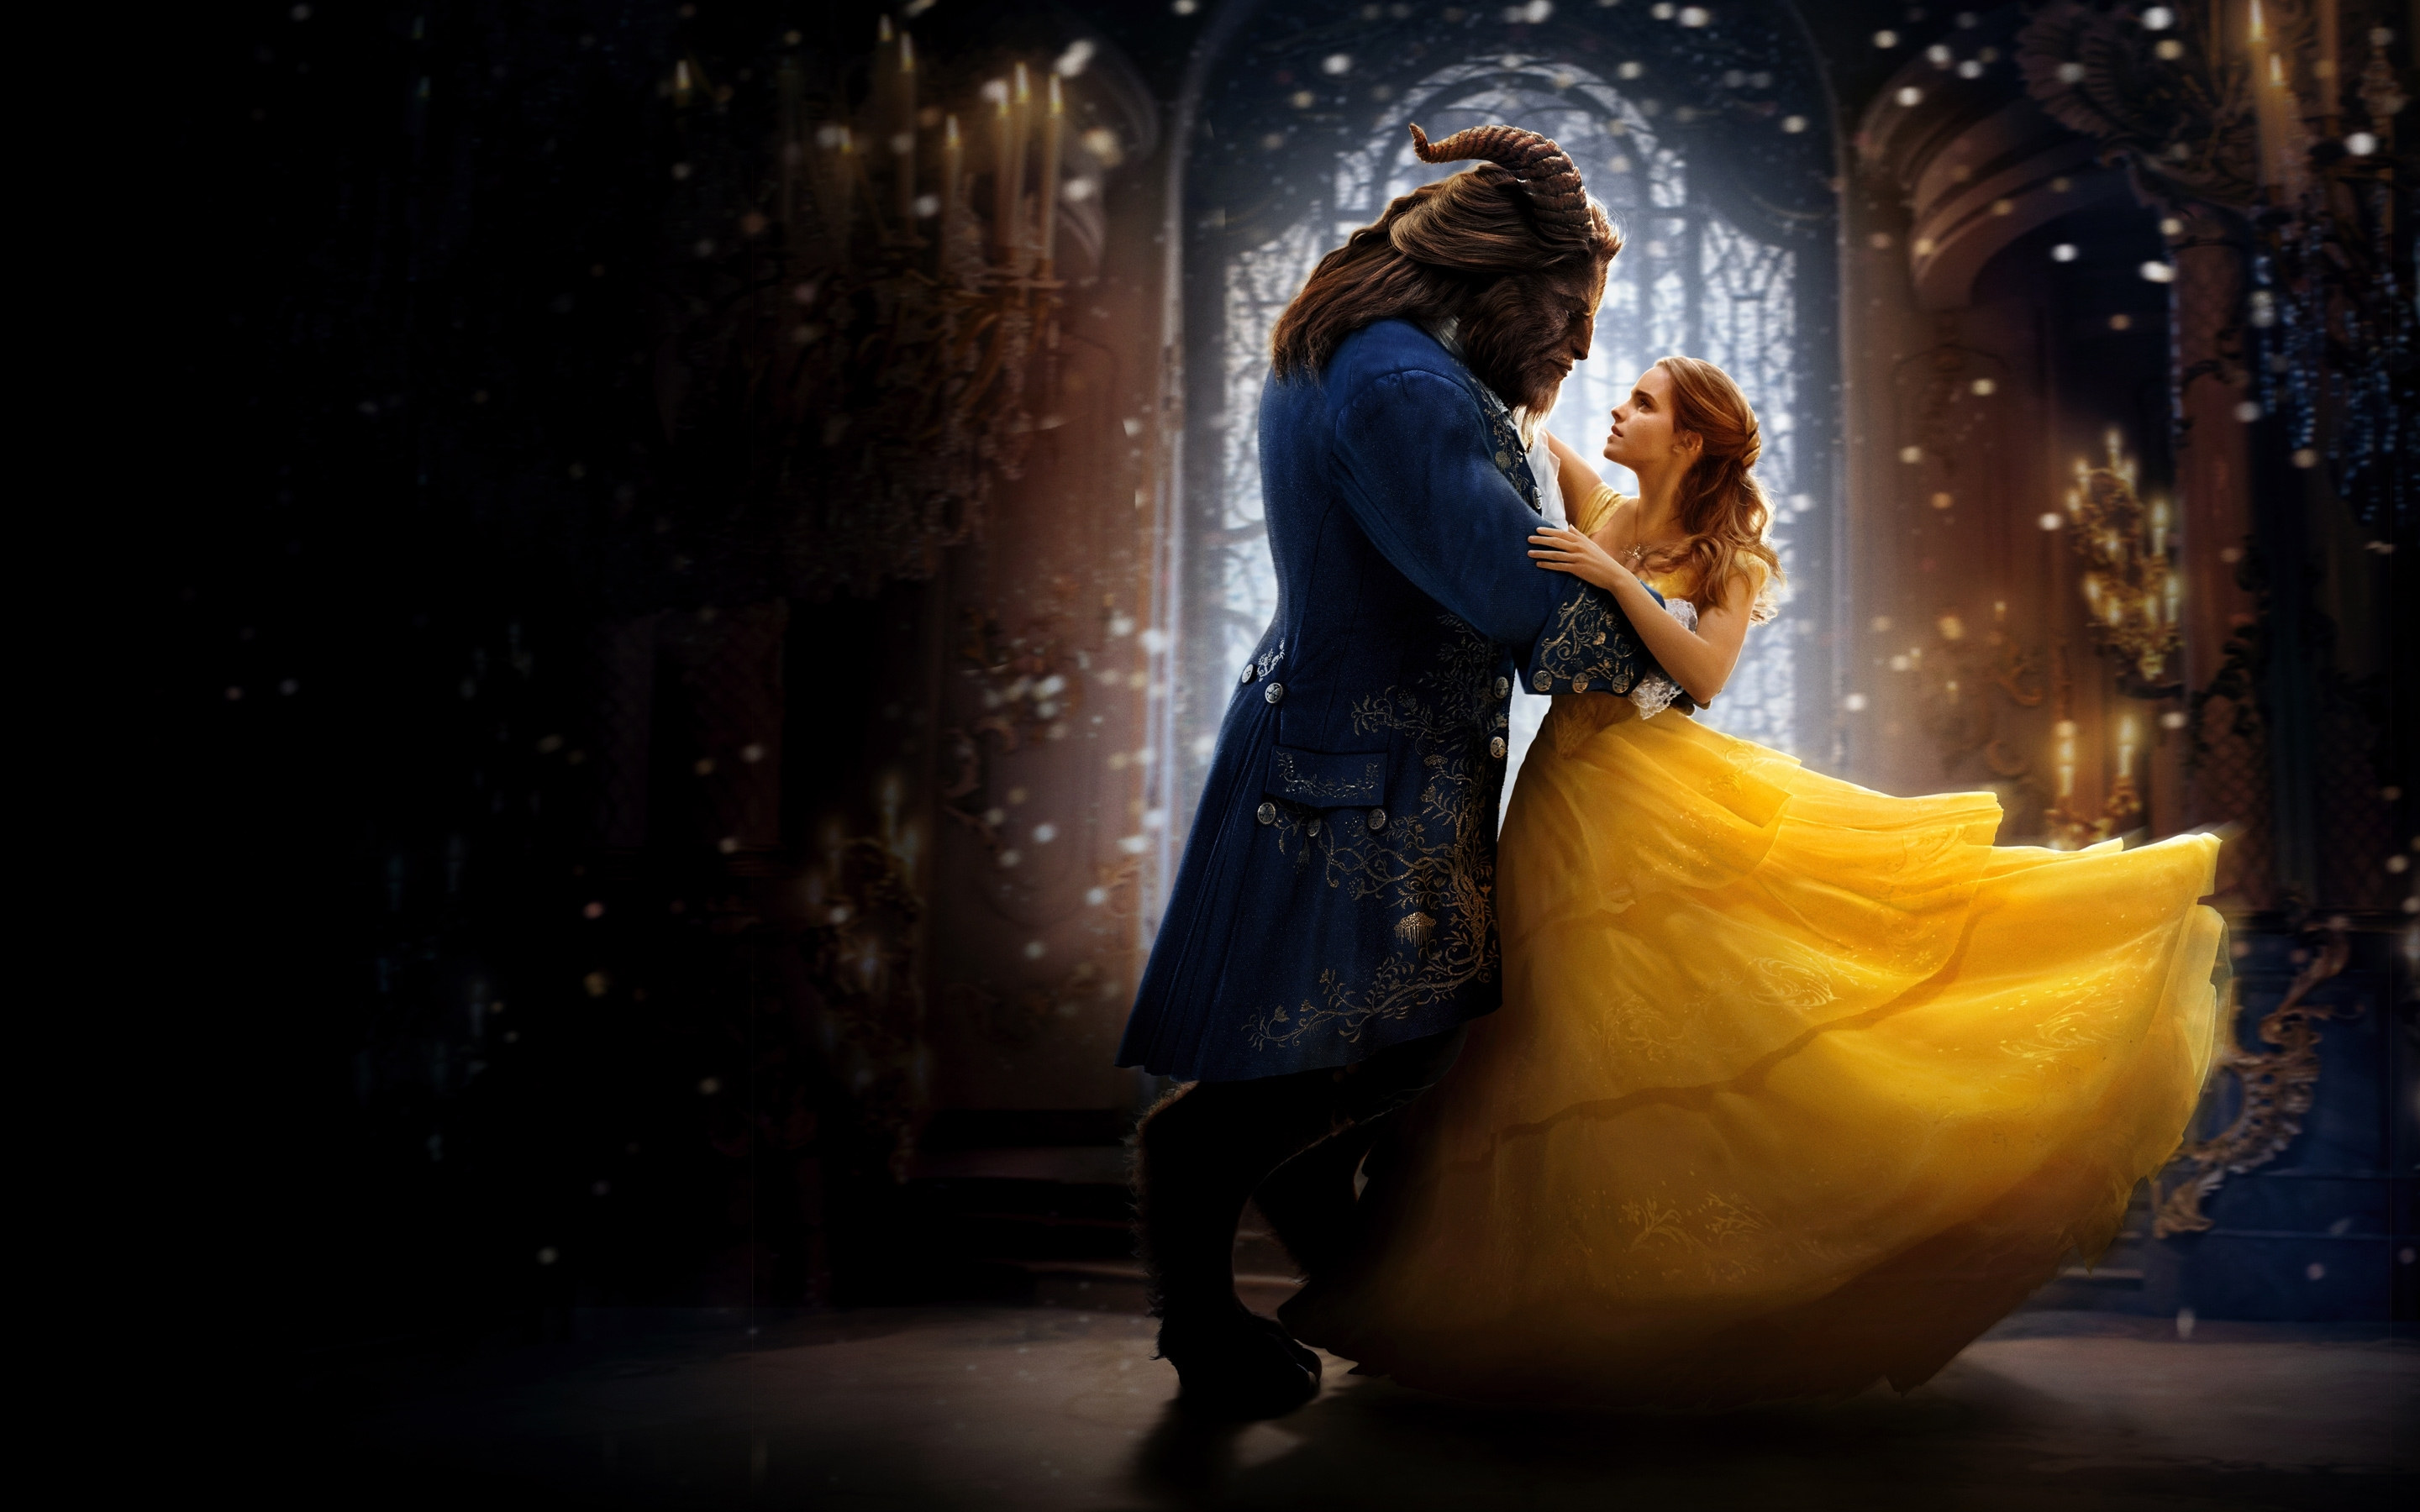 beauty and the beast 2017 4k 8k wallpapers | hd wallpapers | id #19692